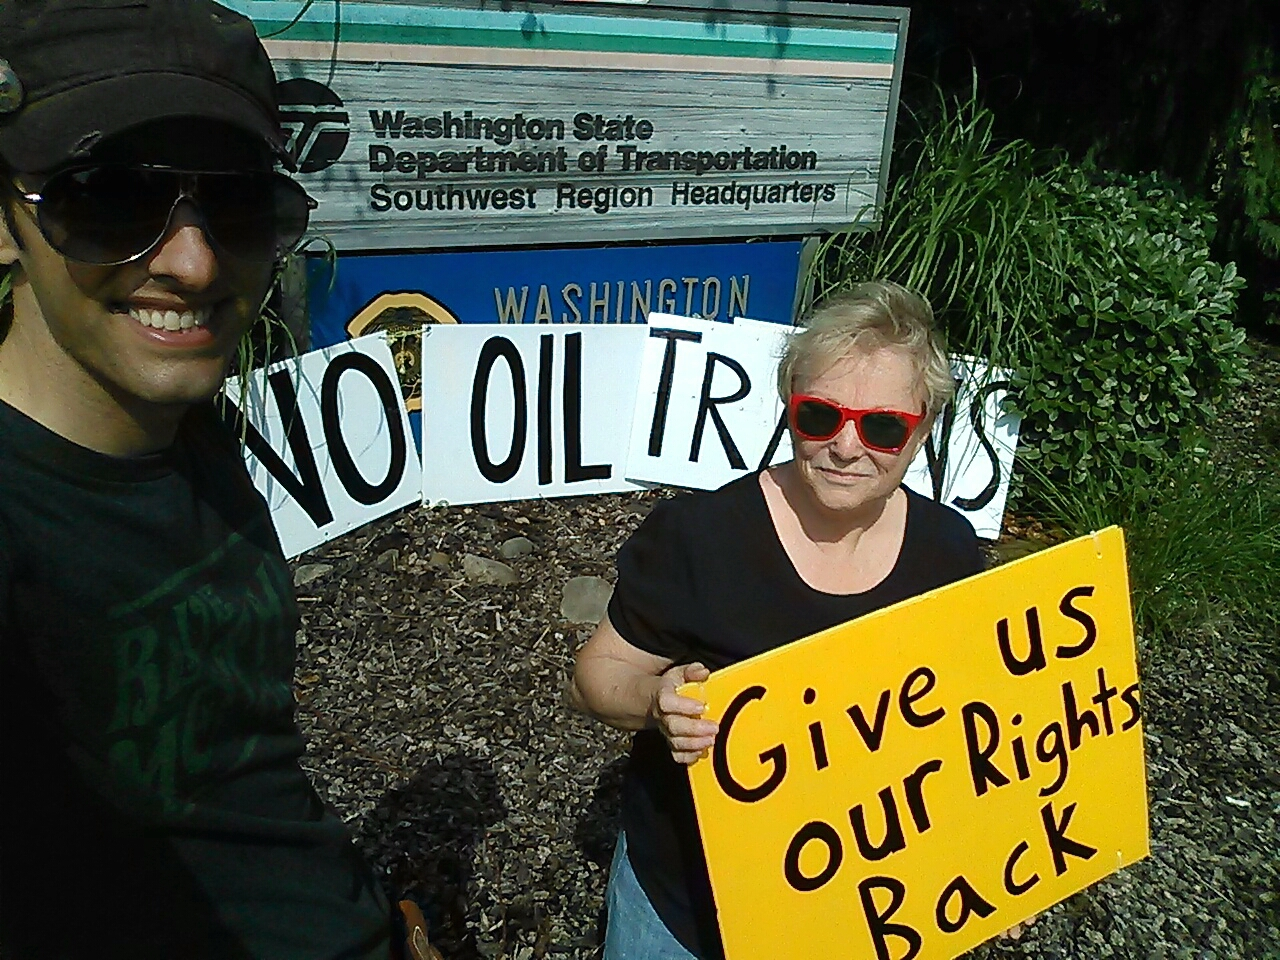 3pm dot portland give us our rights back to know about oil train shipments and don t allow oil to be shipped in dot 111 railcars